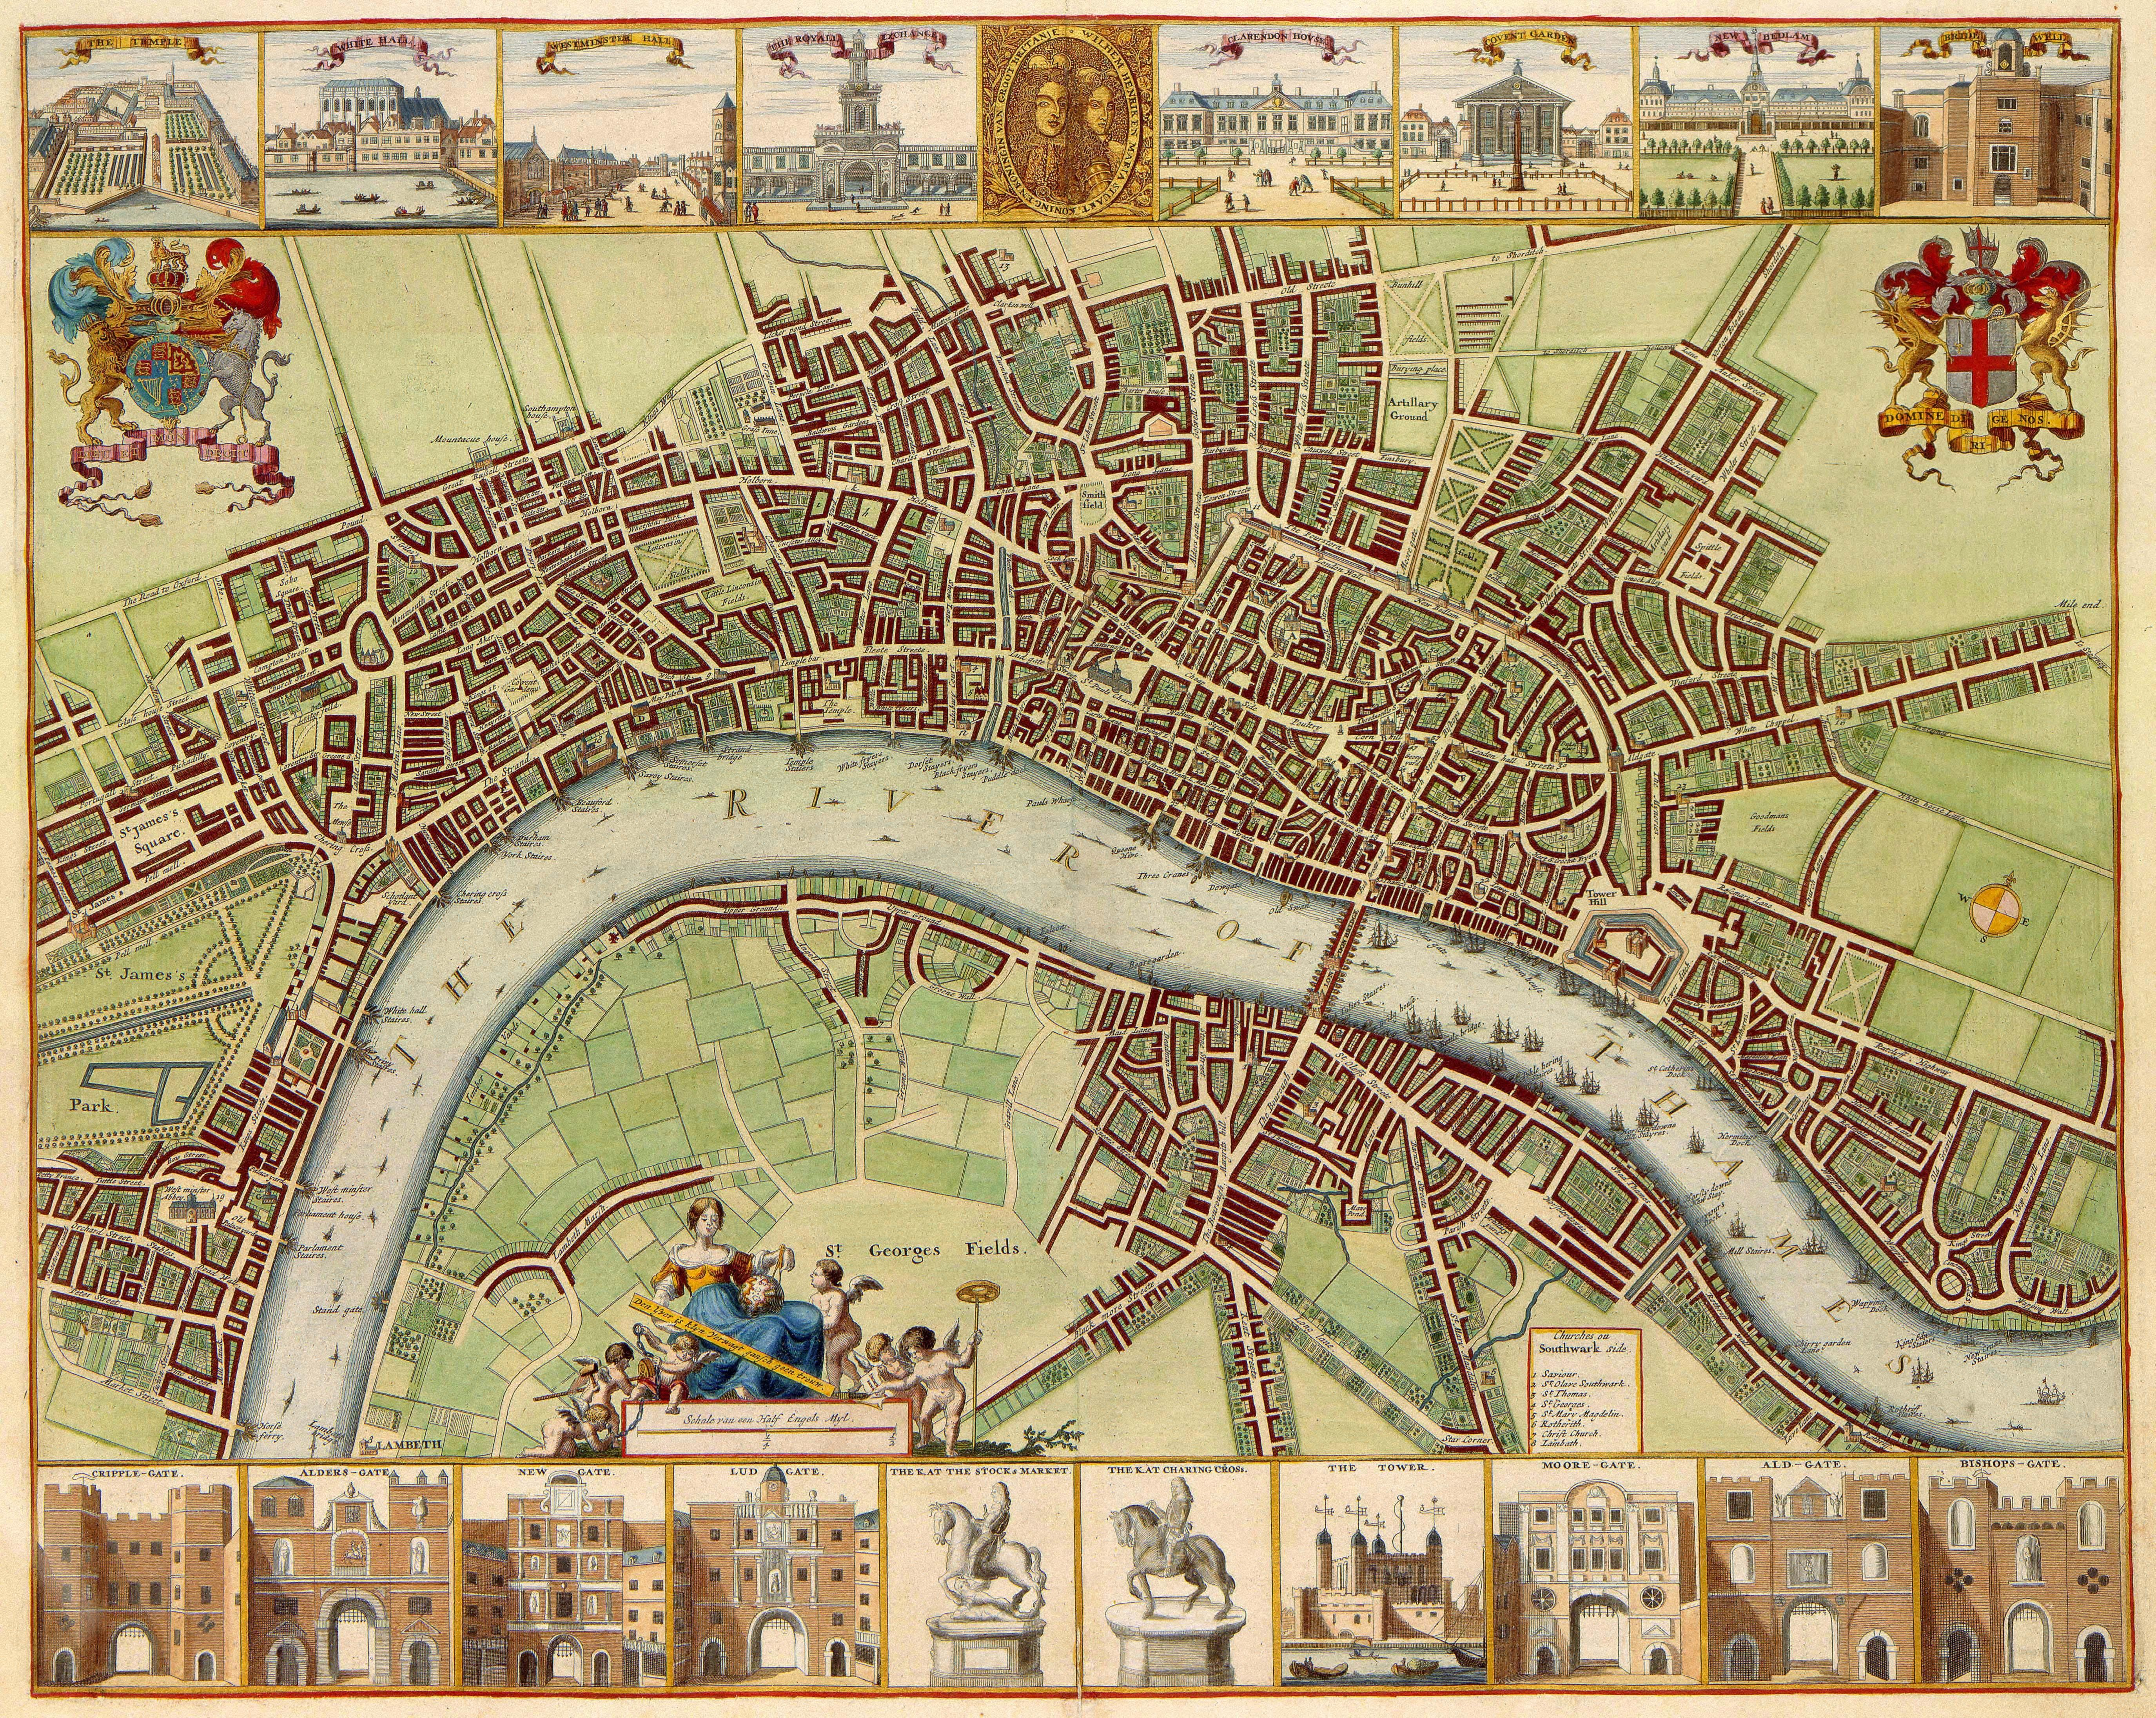 Large 17th century old world style map of london england fine art large 17th century old world style map of london england fine art poster print gumiabroncs Images